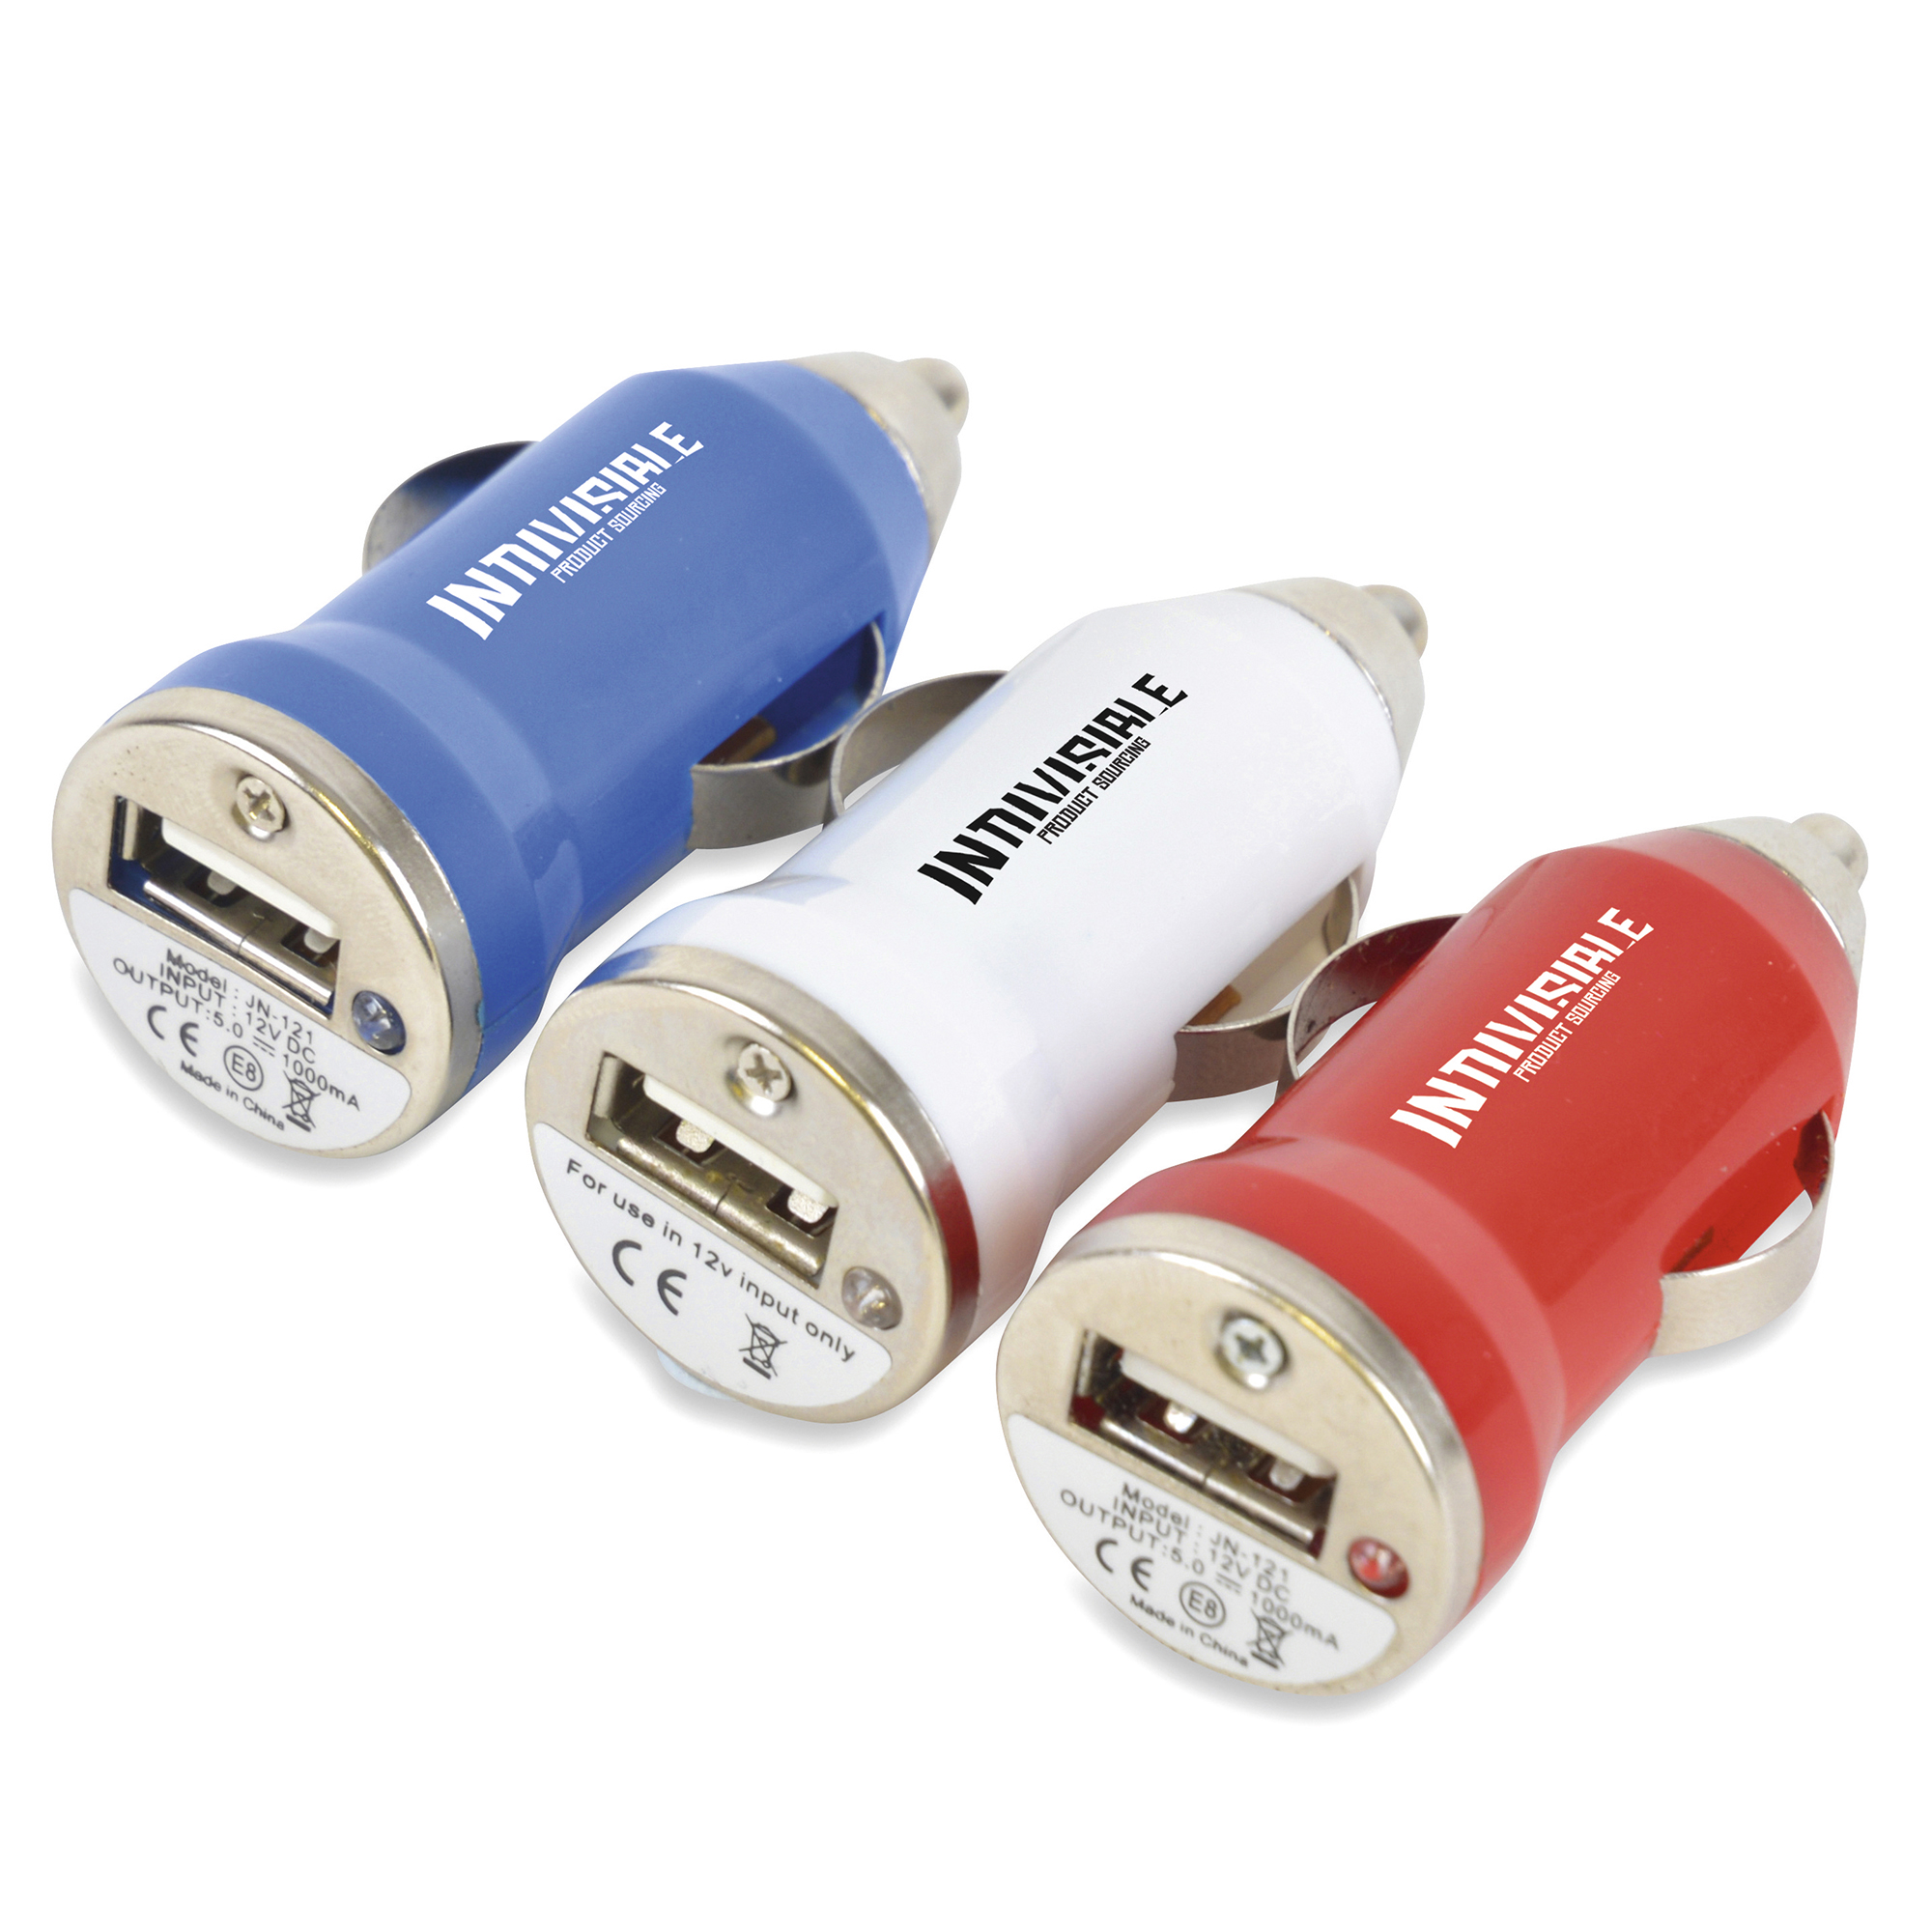 Promotional 1 Port Phone Accessories